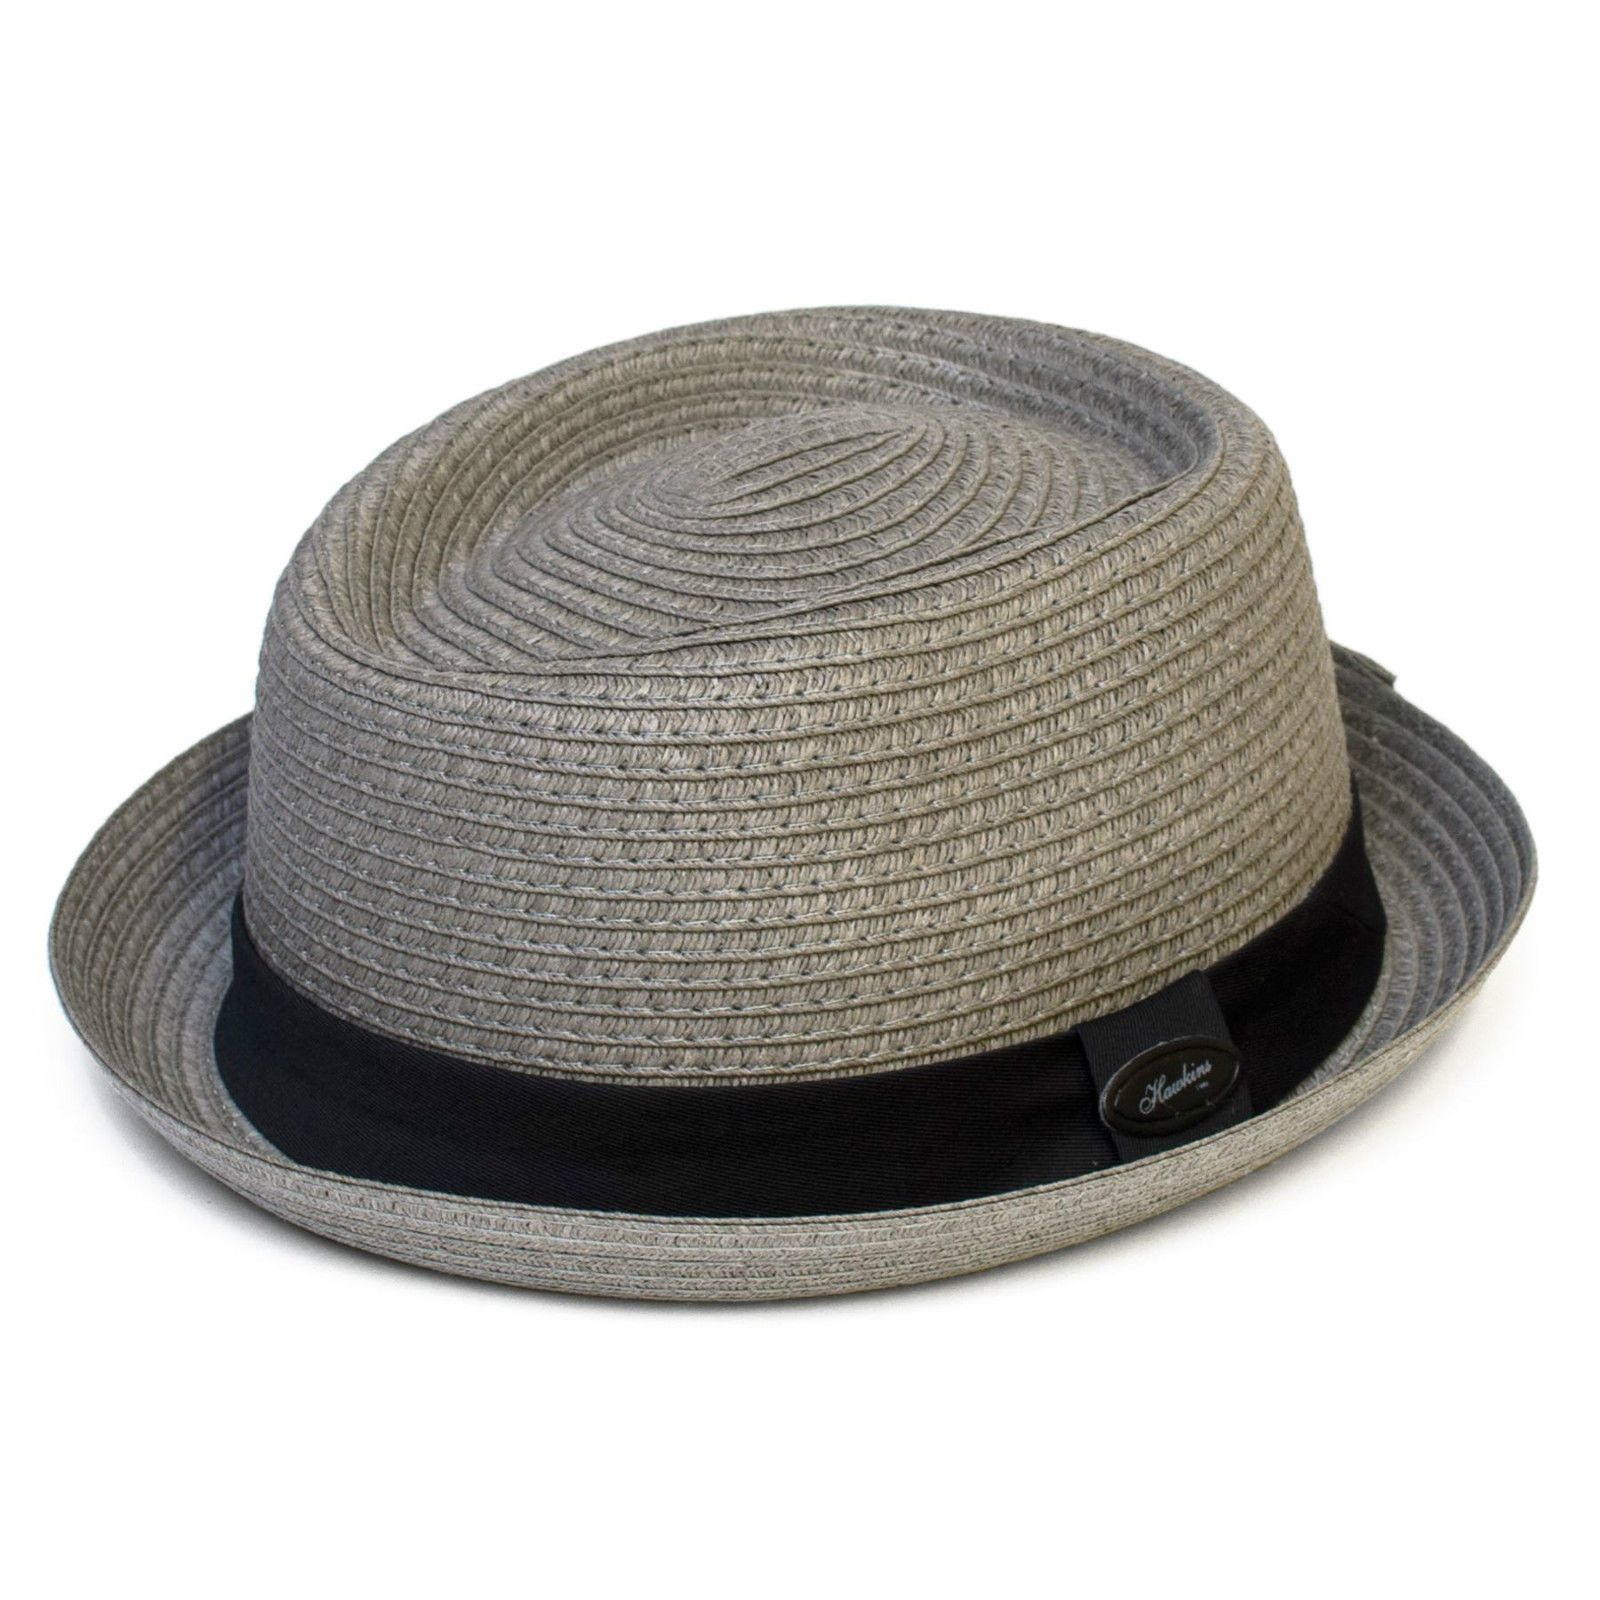 1d23207dc Dark Grey Mens / Ladies Straw Pork Pie Hat - Summer Trilby Cap ...